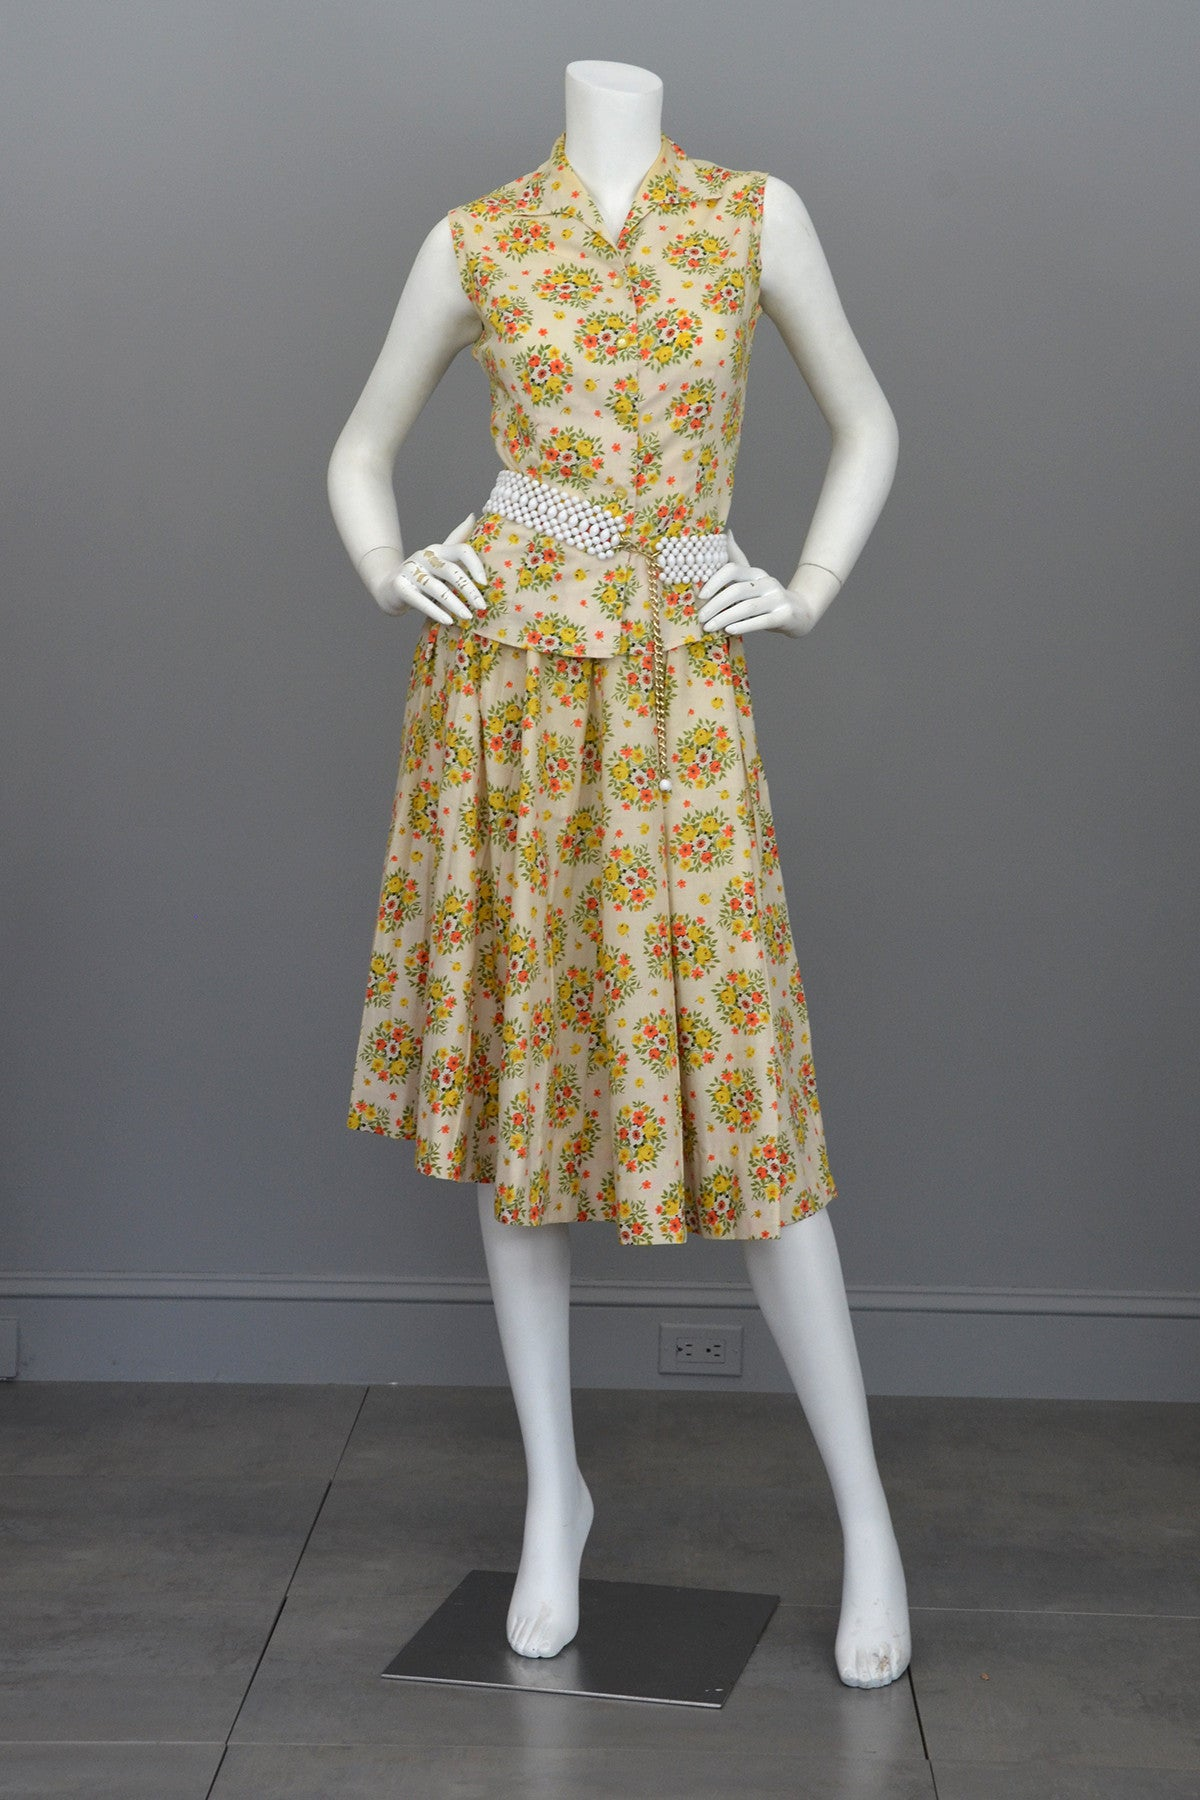 Vintage 1950's Cotton Yellow Rose Print Skirt and Top Dress